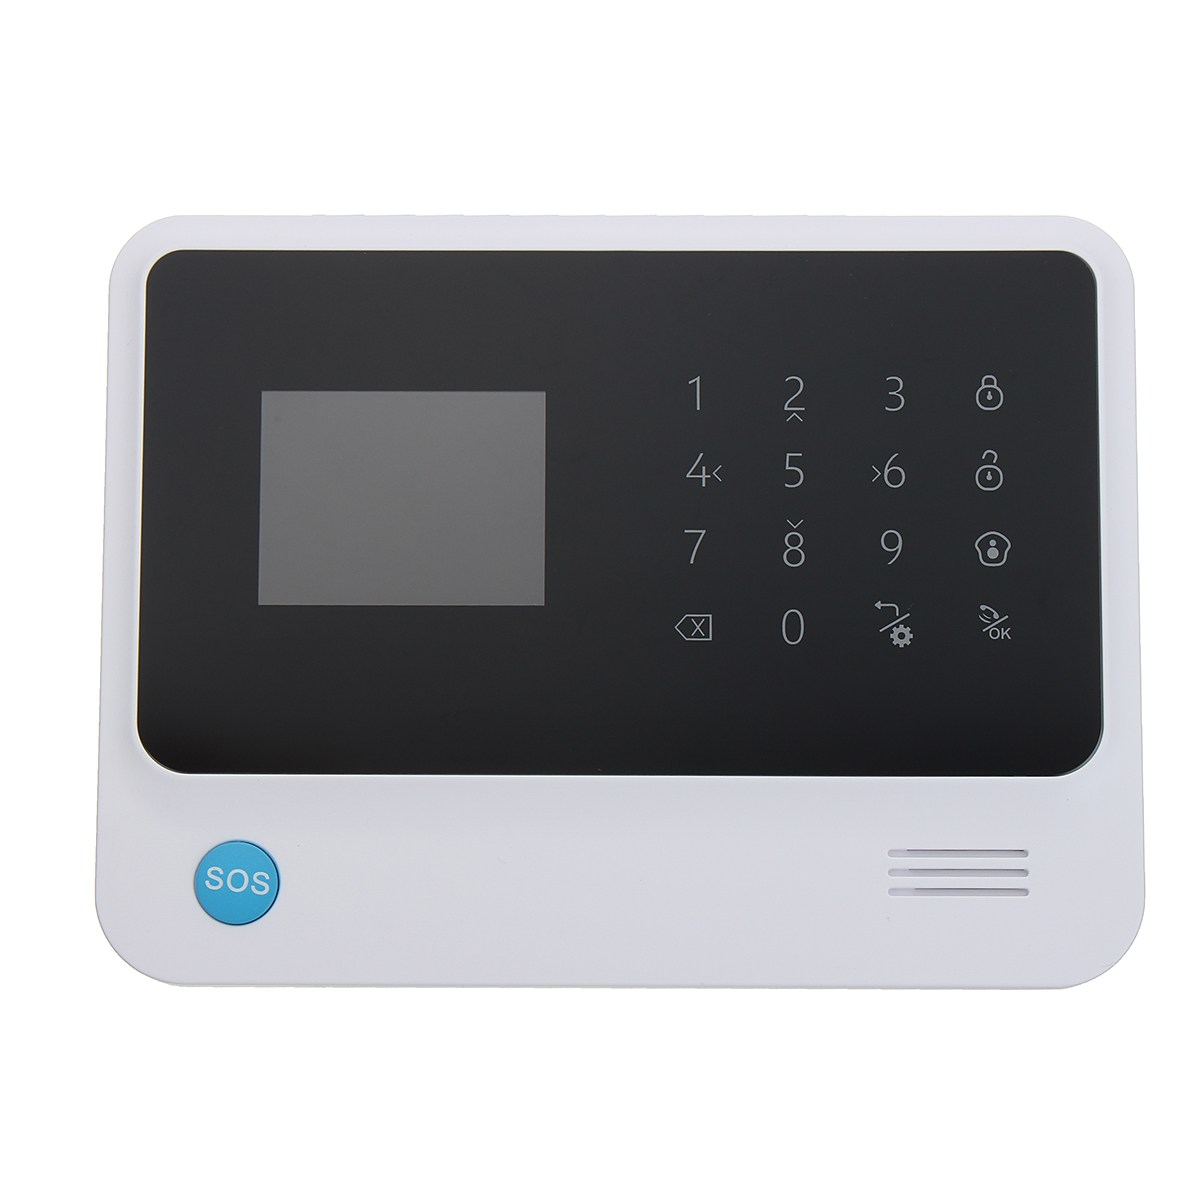 NEW G90B PLUS WiFi GSM Wireless Home Intruder Burglar Alarm Security System HOT Alarm Mainframe Kits wireless smoke fire detector for wireless for touch keypad panel wifi gsm home security burglar voice alarm system